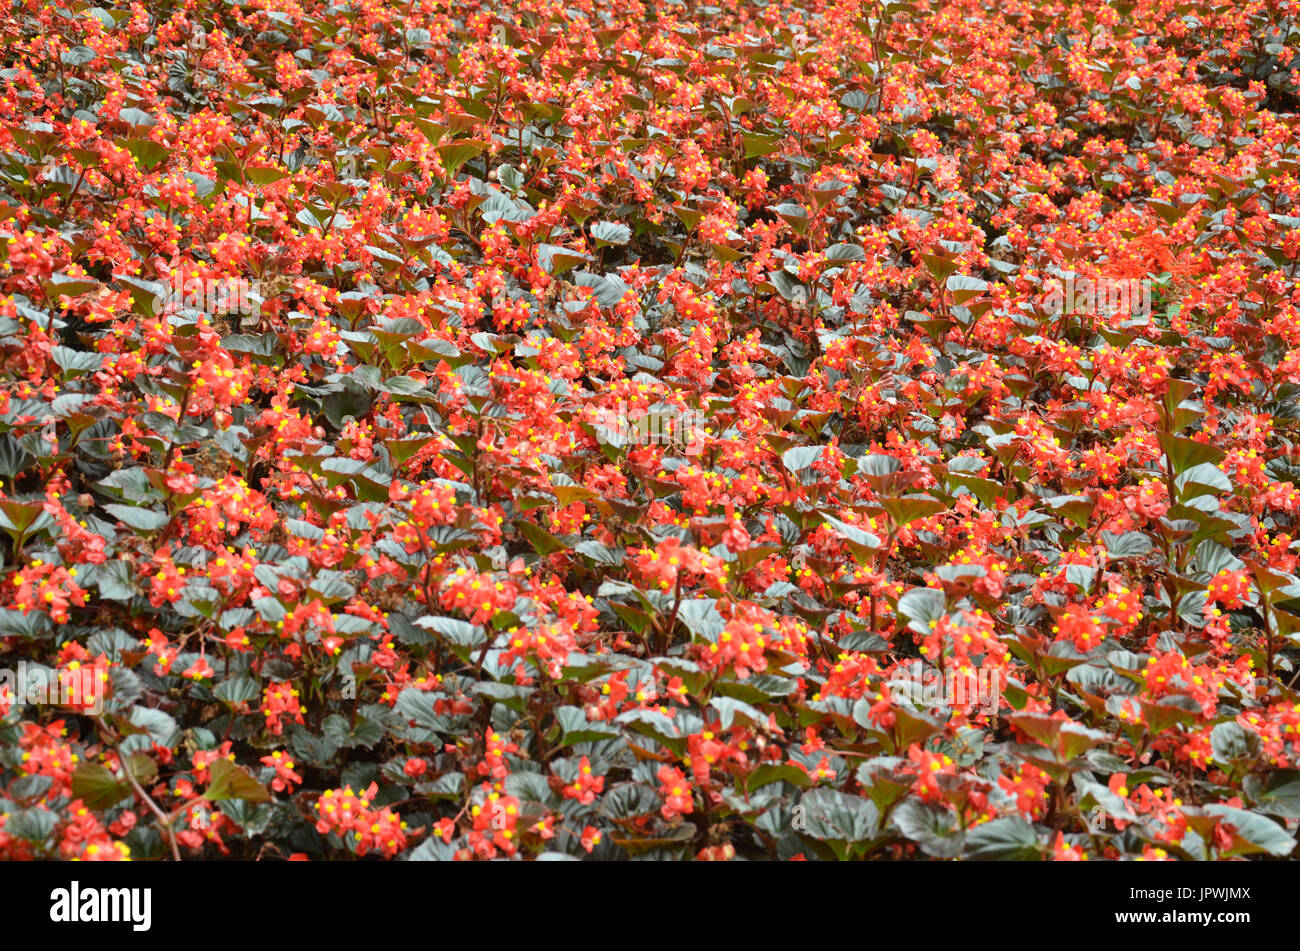 Extraordinary and natural beauty stock photos extraordinary and natural beauty stock images - Flowers that bloom all year round ...